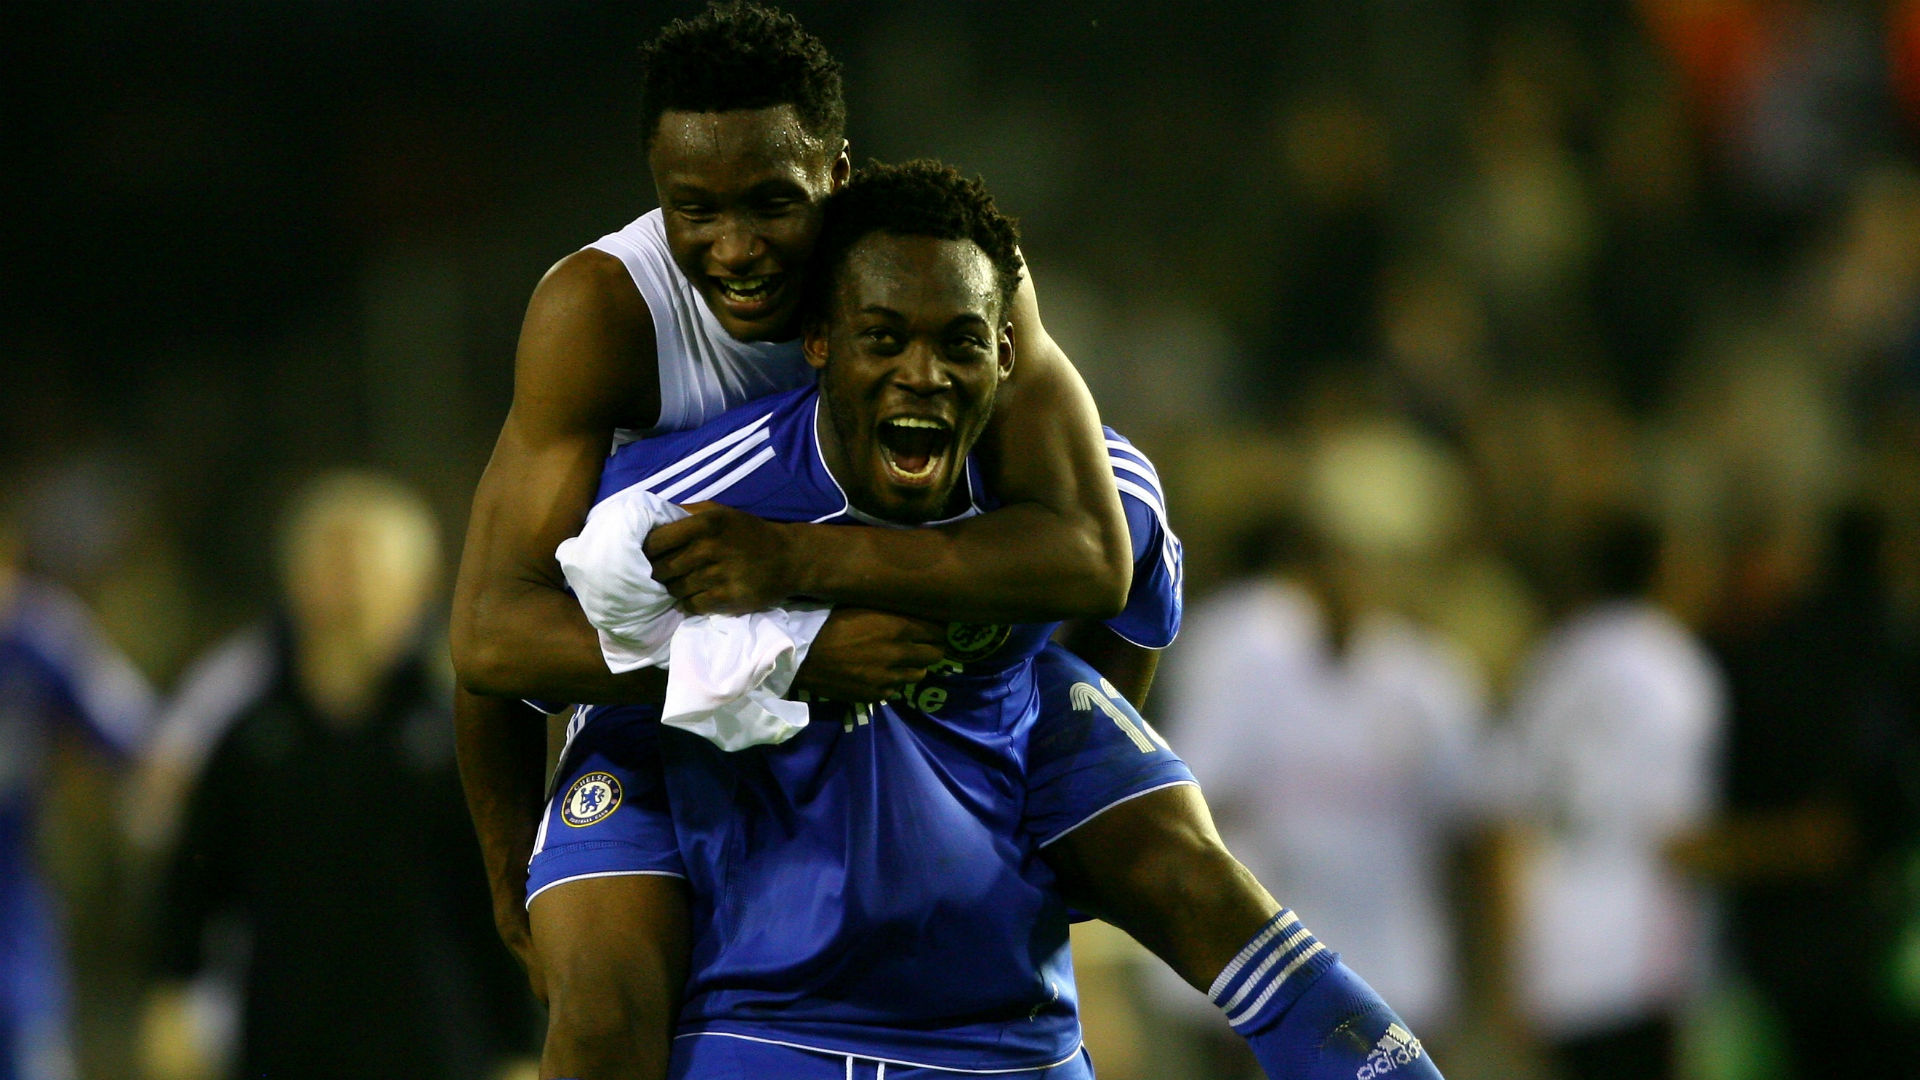 'He was the guy who really helped me at Chelsea' – Mikel singles out Essien for praise